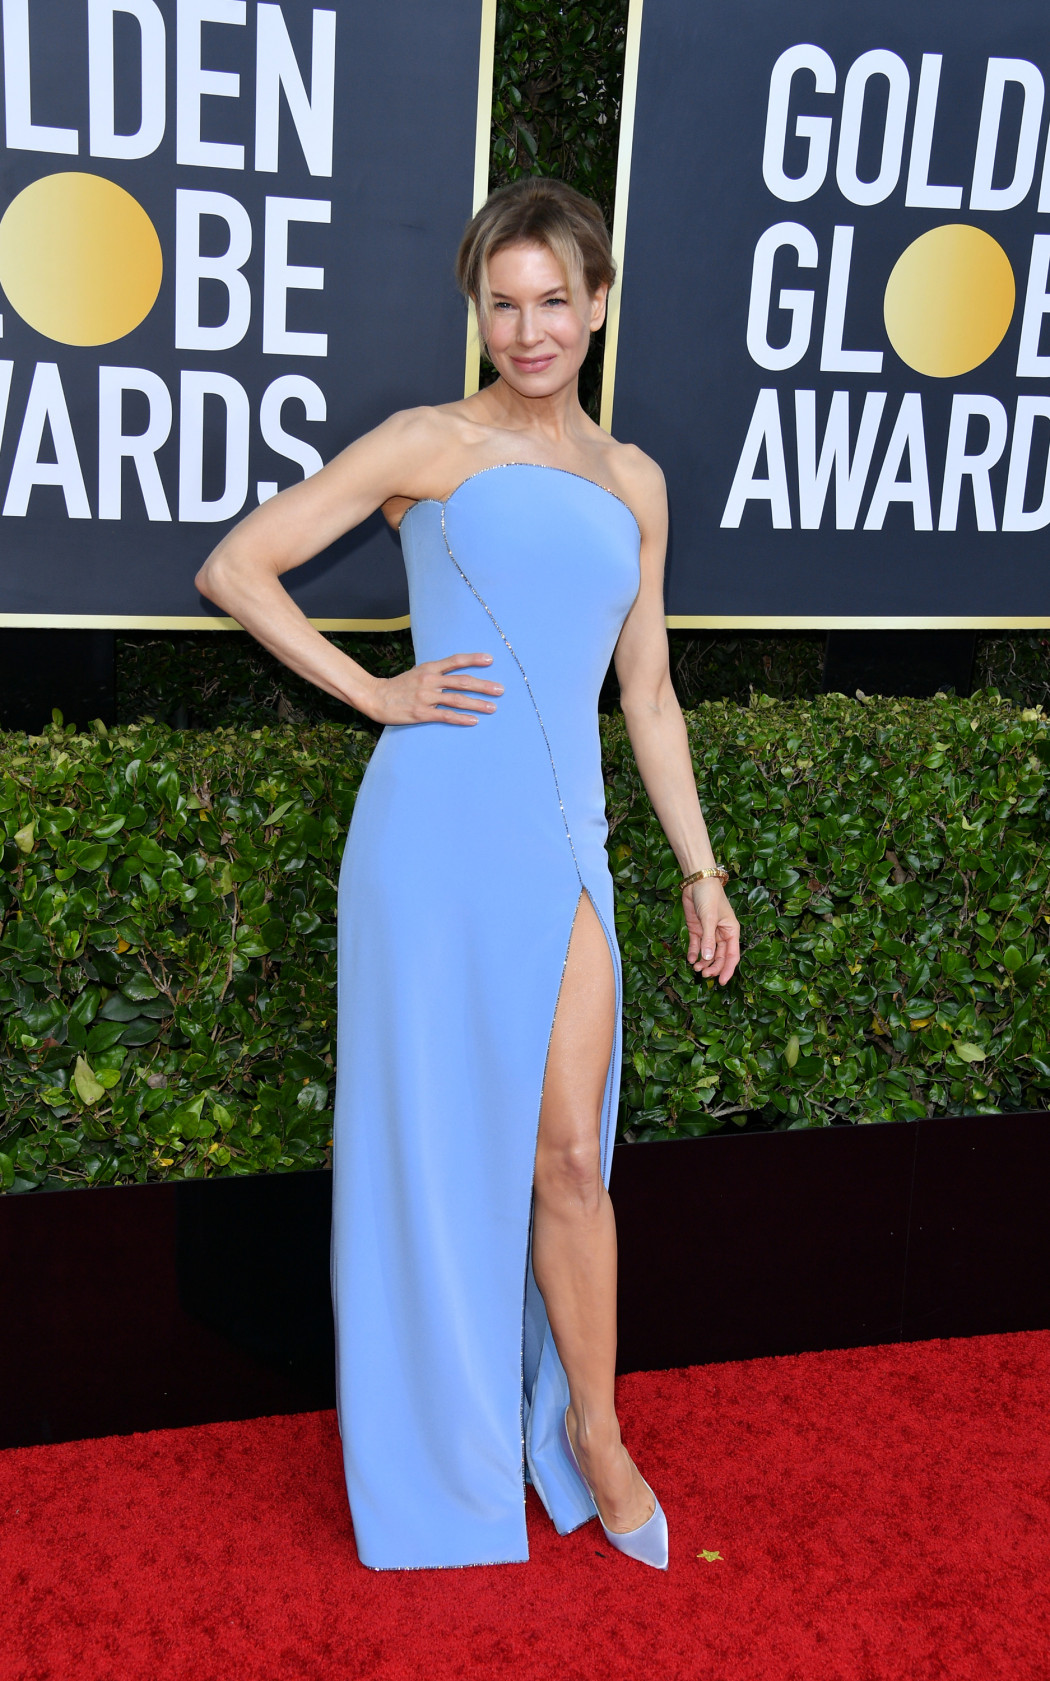 Golden Globes 2020 : les plus beaux looks du tapis rouge - 8